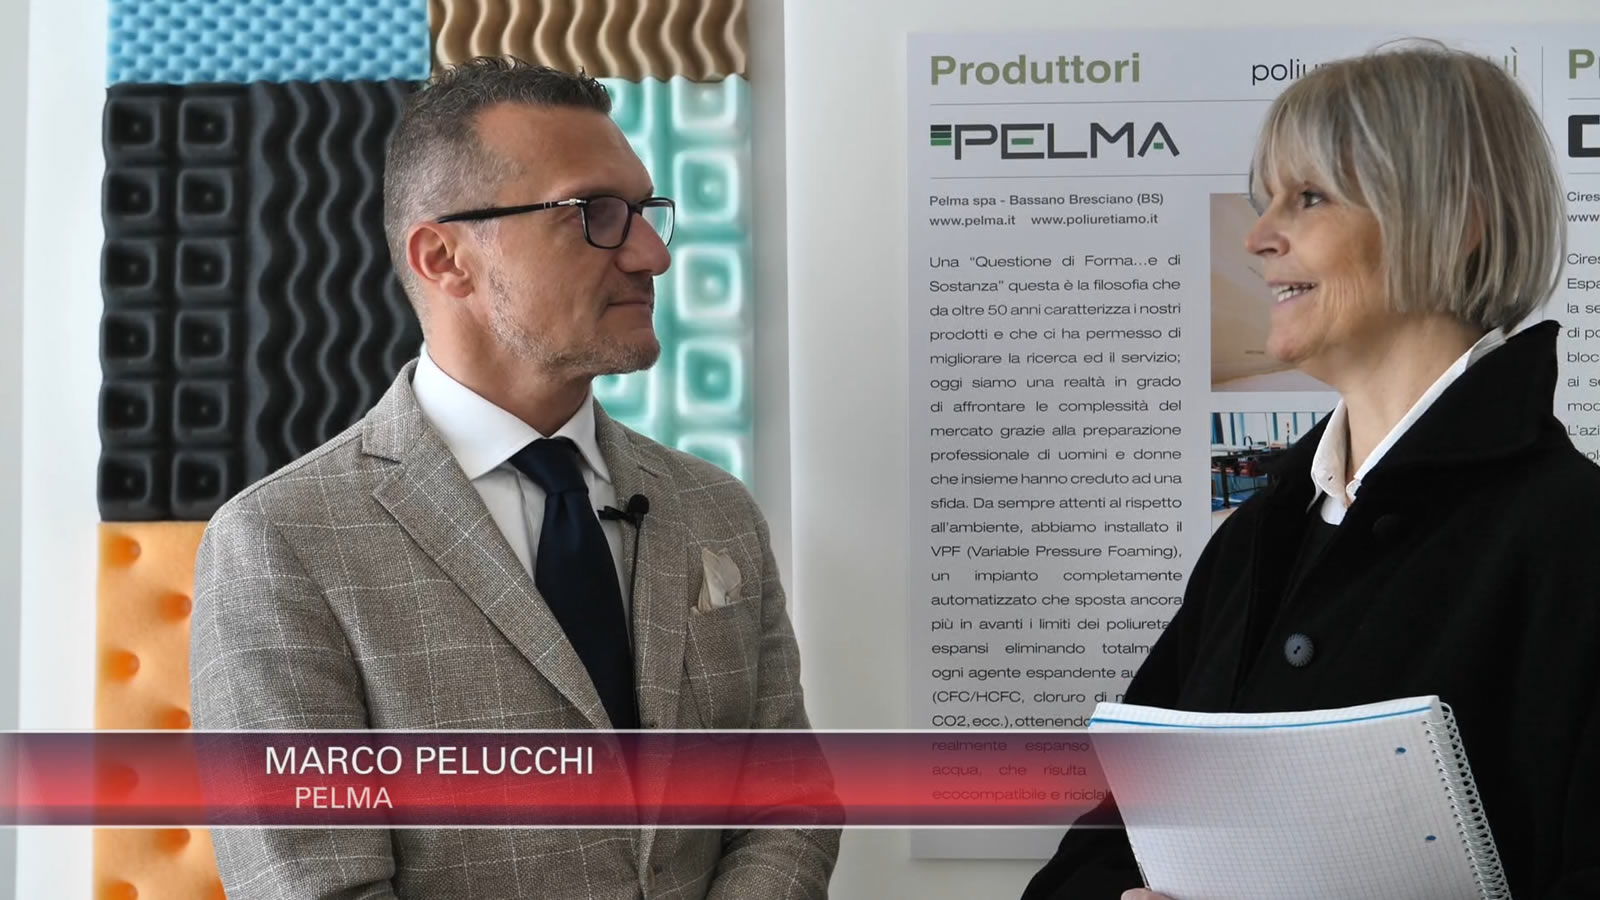 Pelma, leader in polyurethane at Milan Design Week 2019